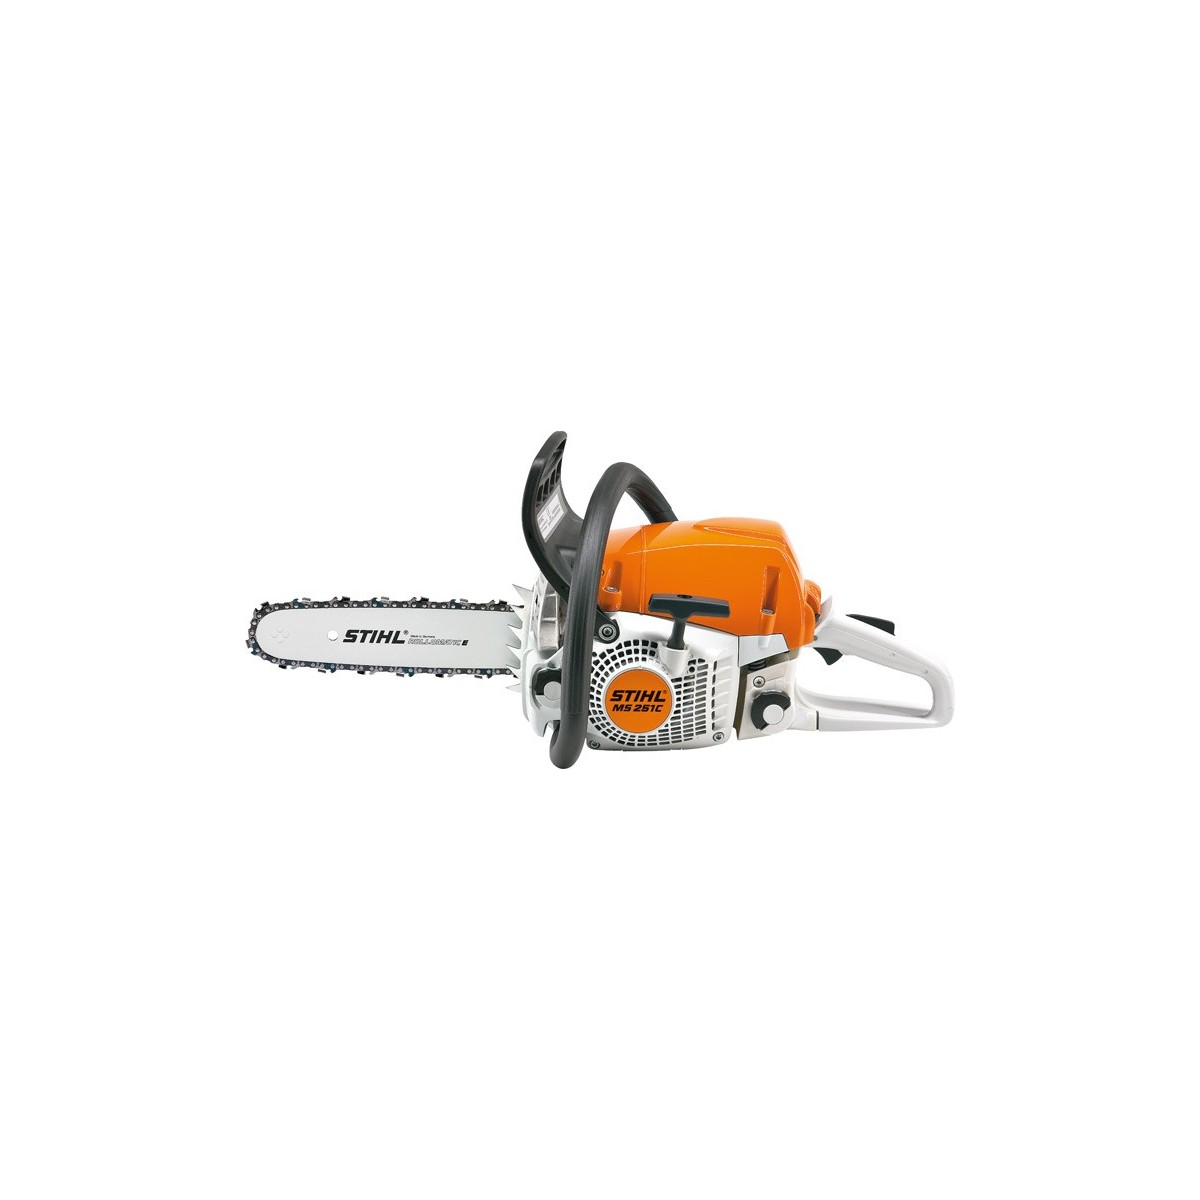 achat tronconneuse stihl ms 251 cbeq45cm stihl bender motoculture. Black Bedroom Furniture Sets. Home Design Ideas